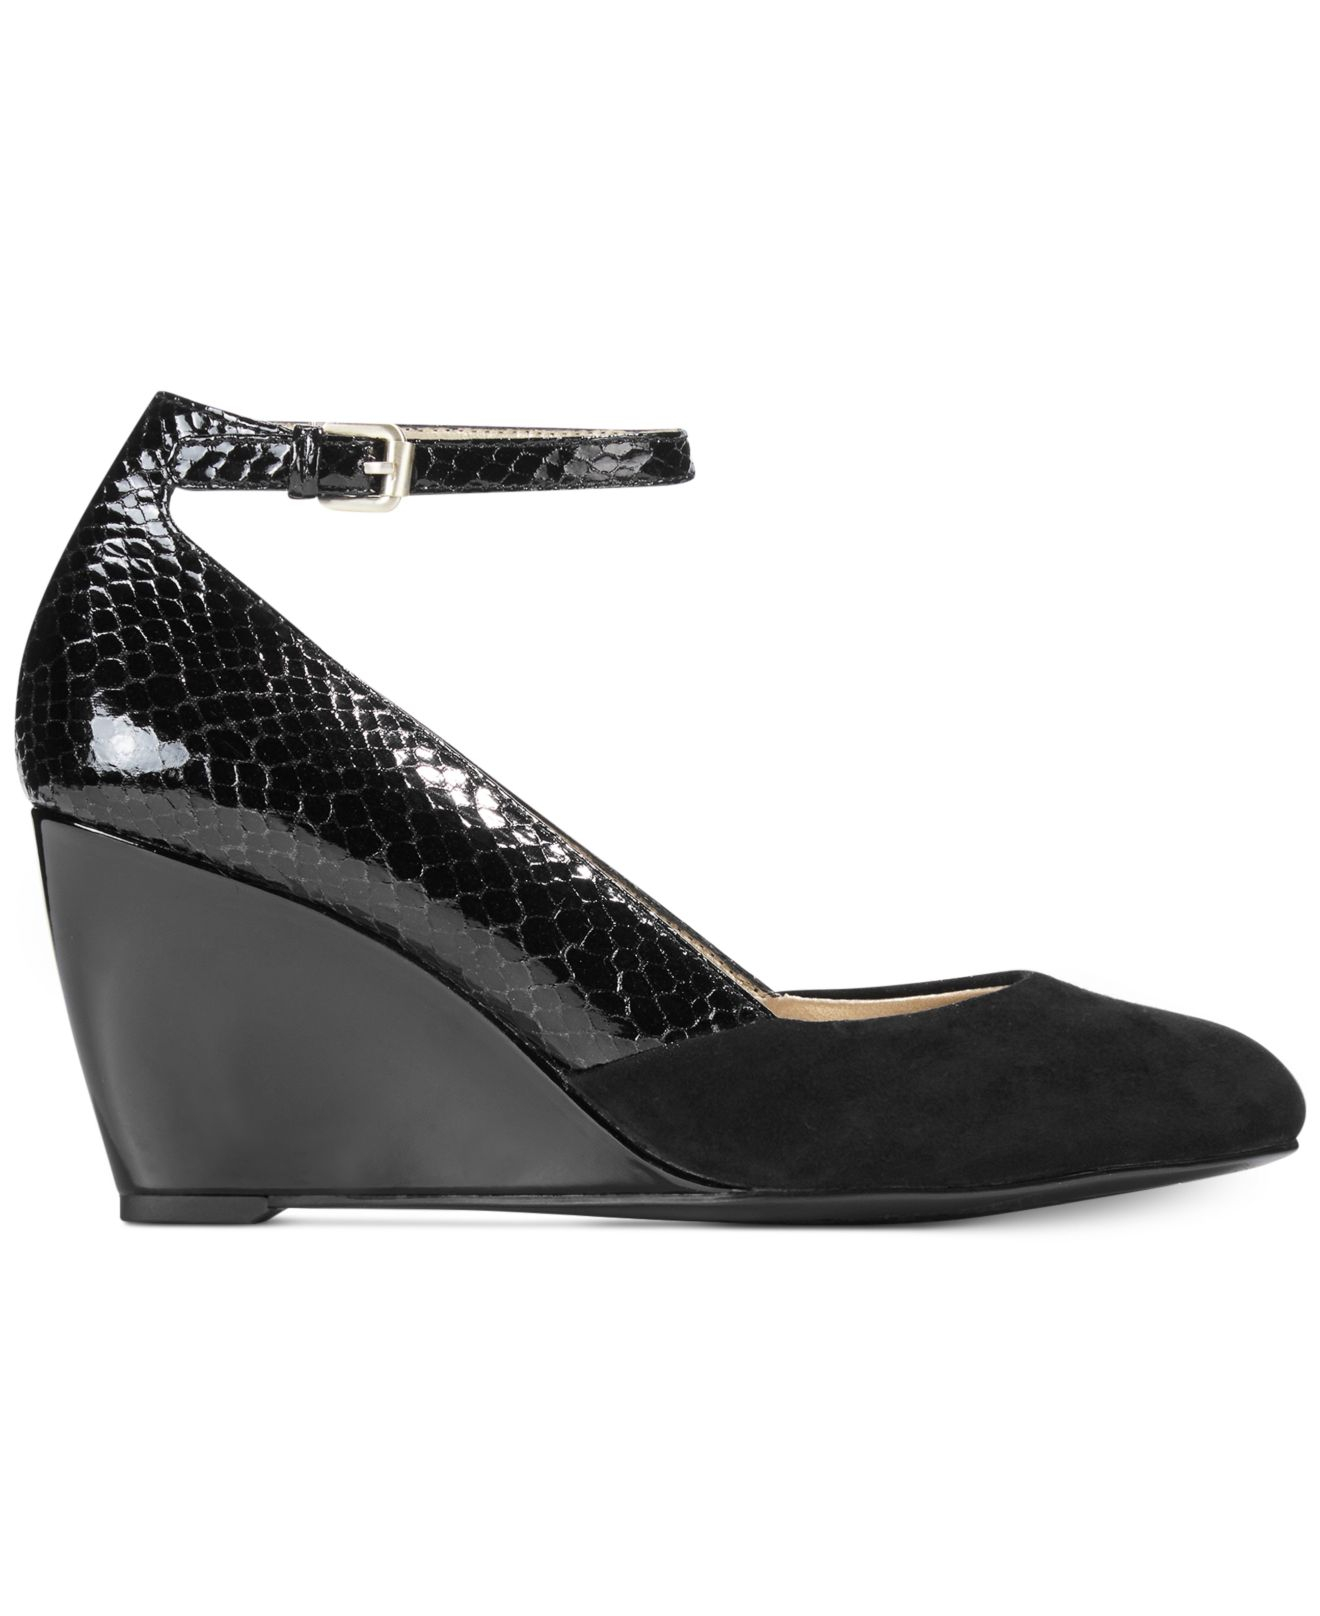 97dcf478993 Lyst - Bandolino Topical Ankle Strap Wedge Pumps in Black